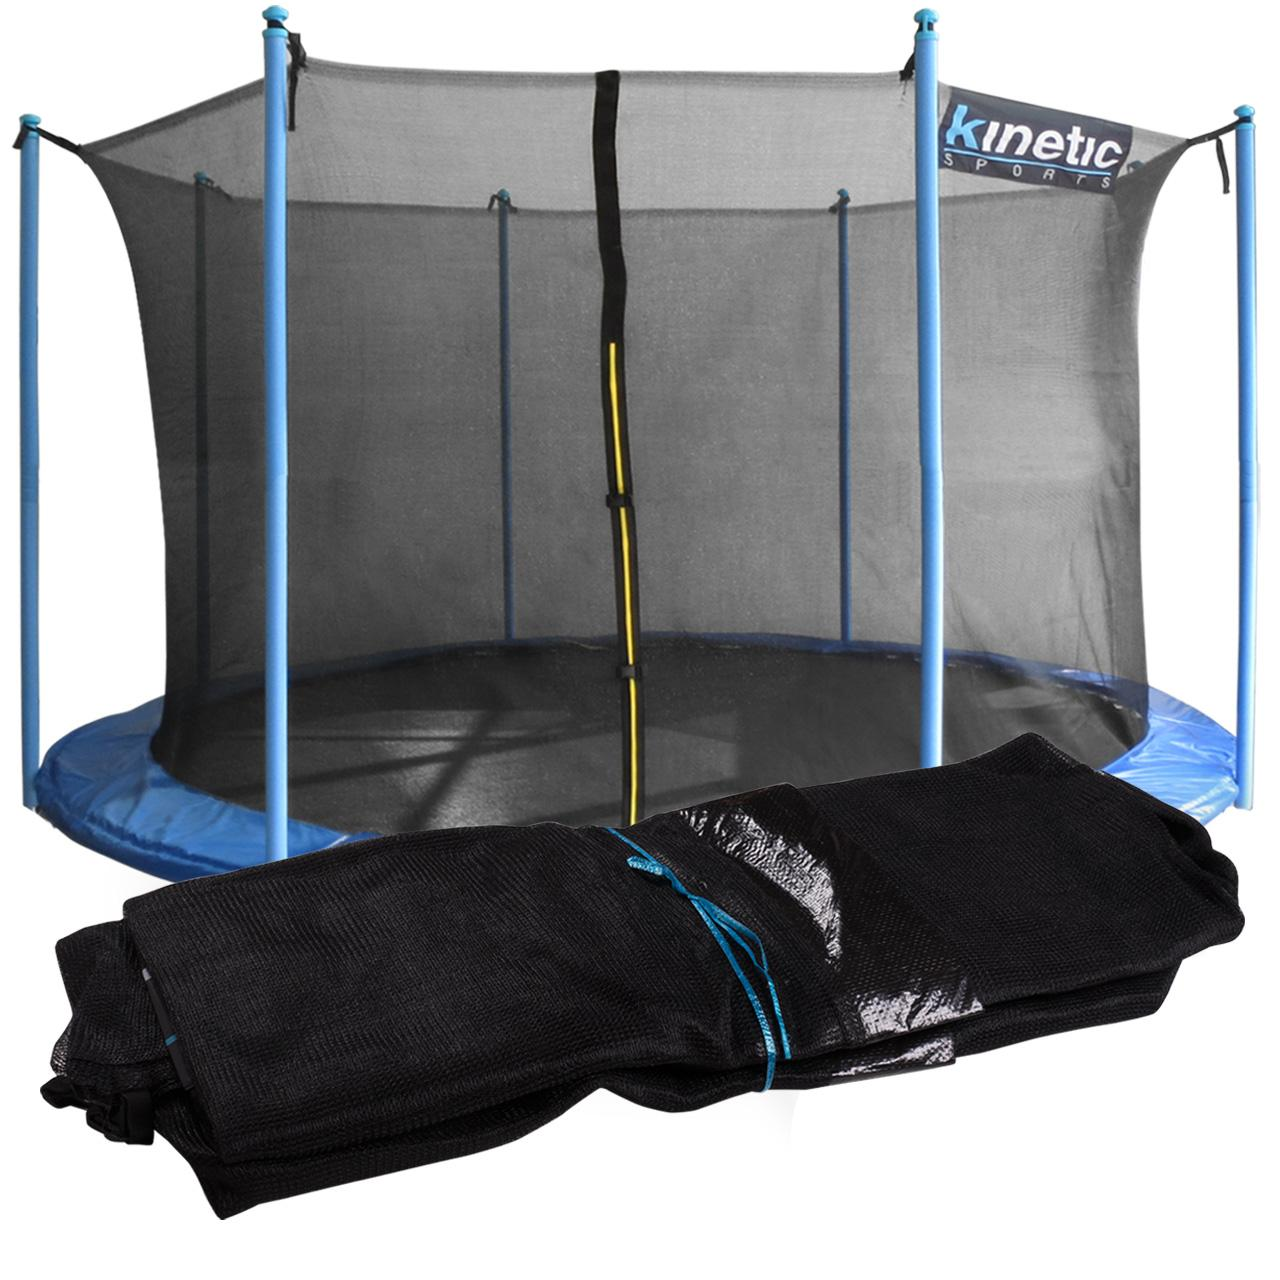 kinetic sports universal sicherheitsnetz f r trampoline ersatzteil zubeh r tplh ebay. Black Bedroom Furniture Sets. Home Design Ideas